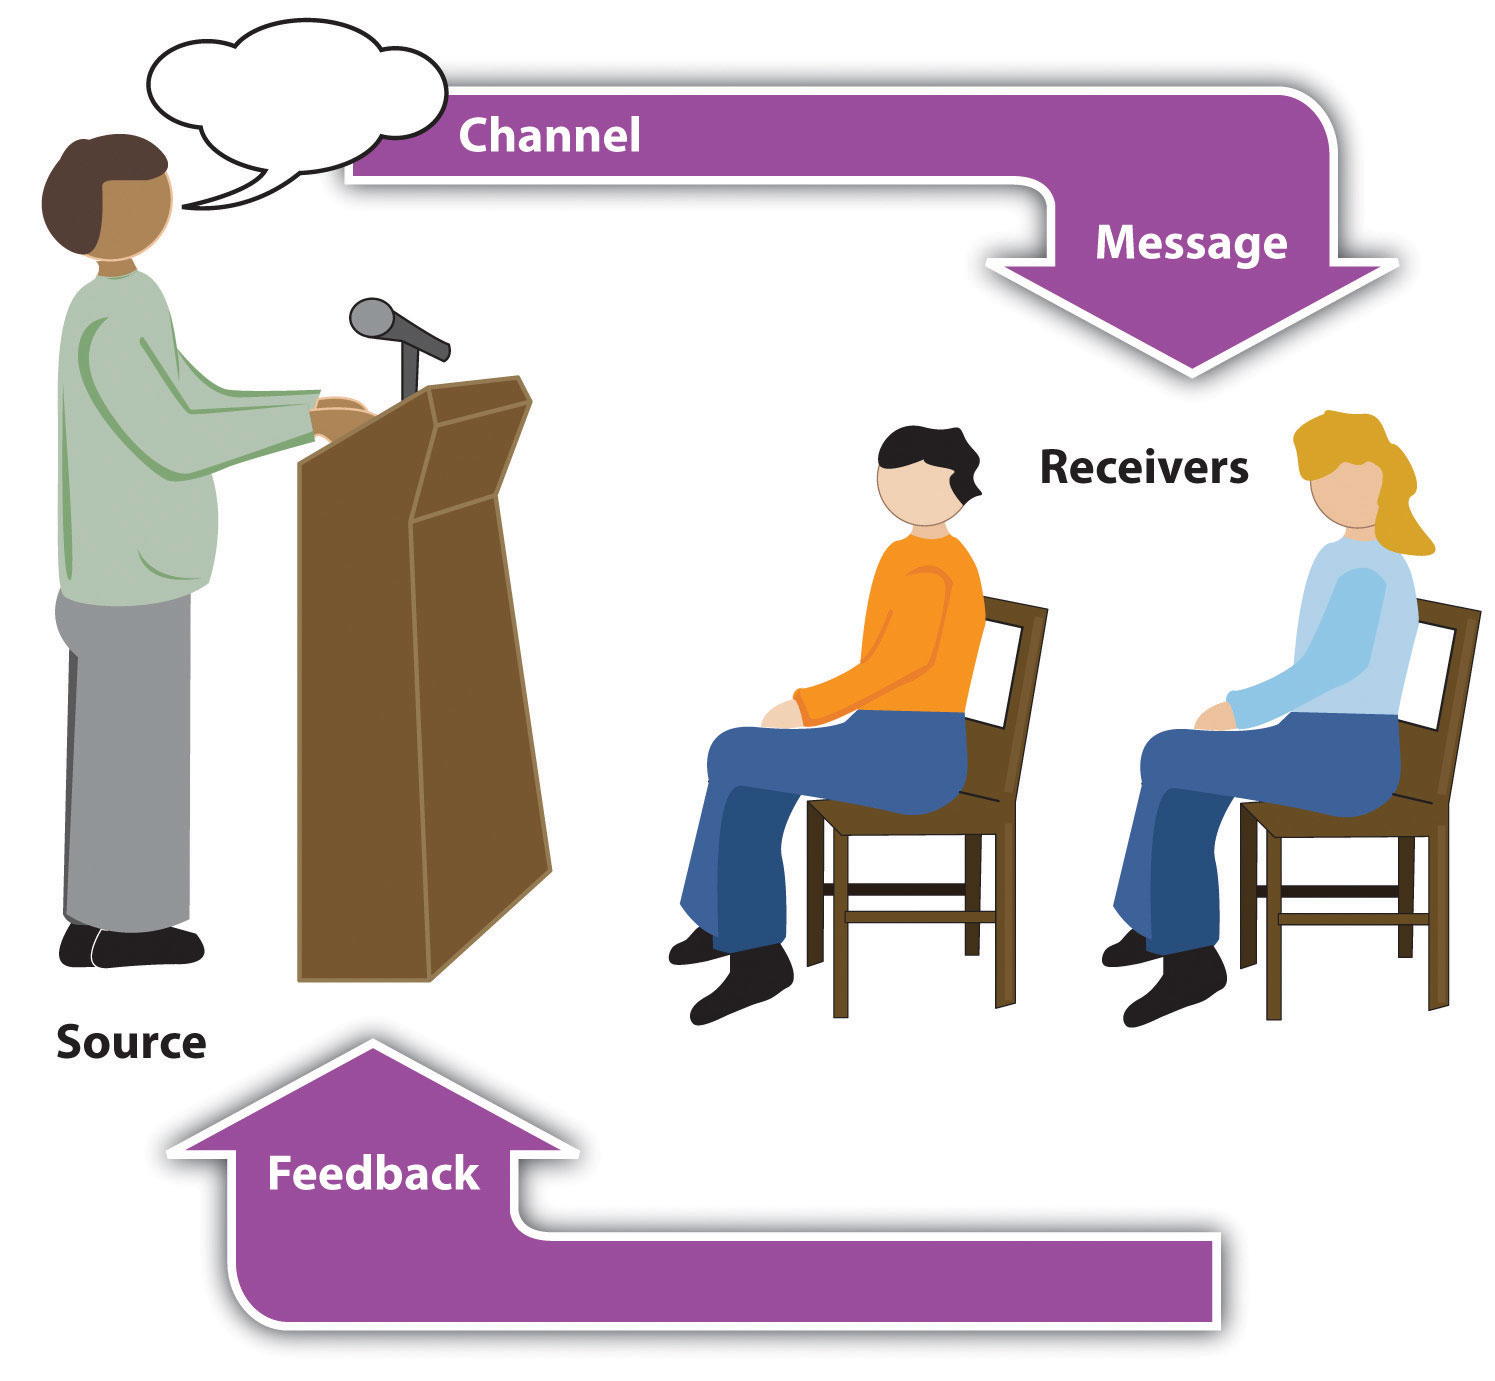 The source speaks a message through a channel to receivers. Feedback is then given to the source by the receivers